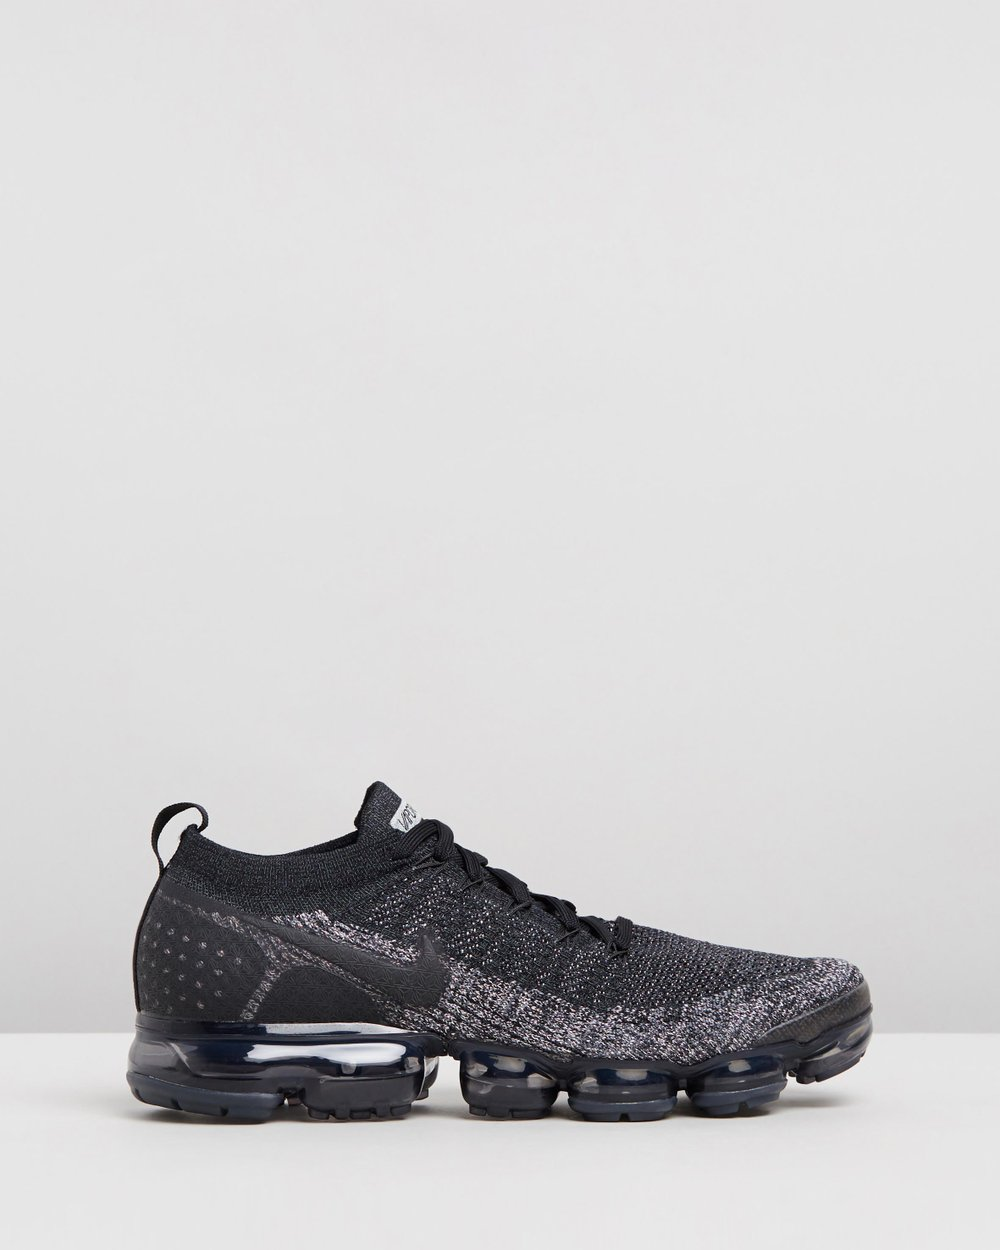 5ed0b828dd94 Air Vapormax Flyknit 2 - Men s by Nike Online